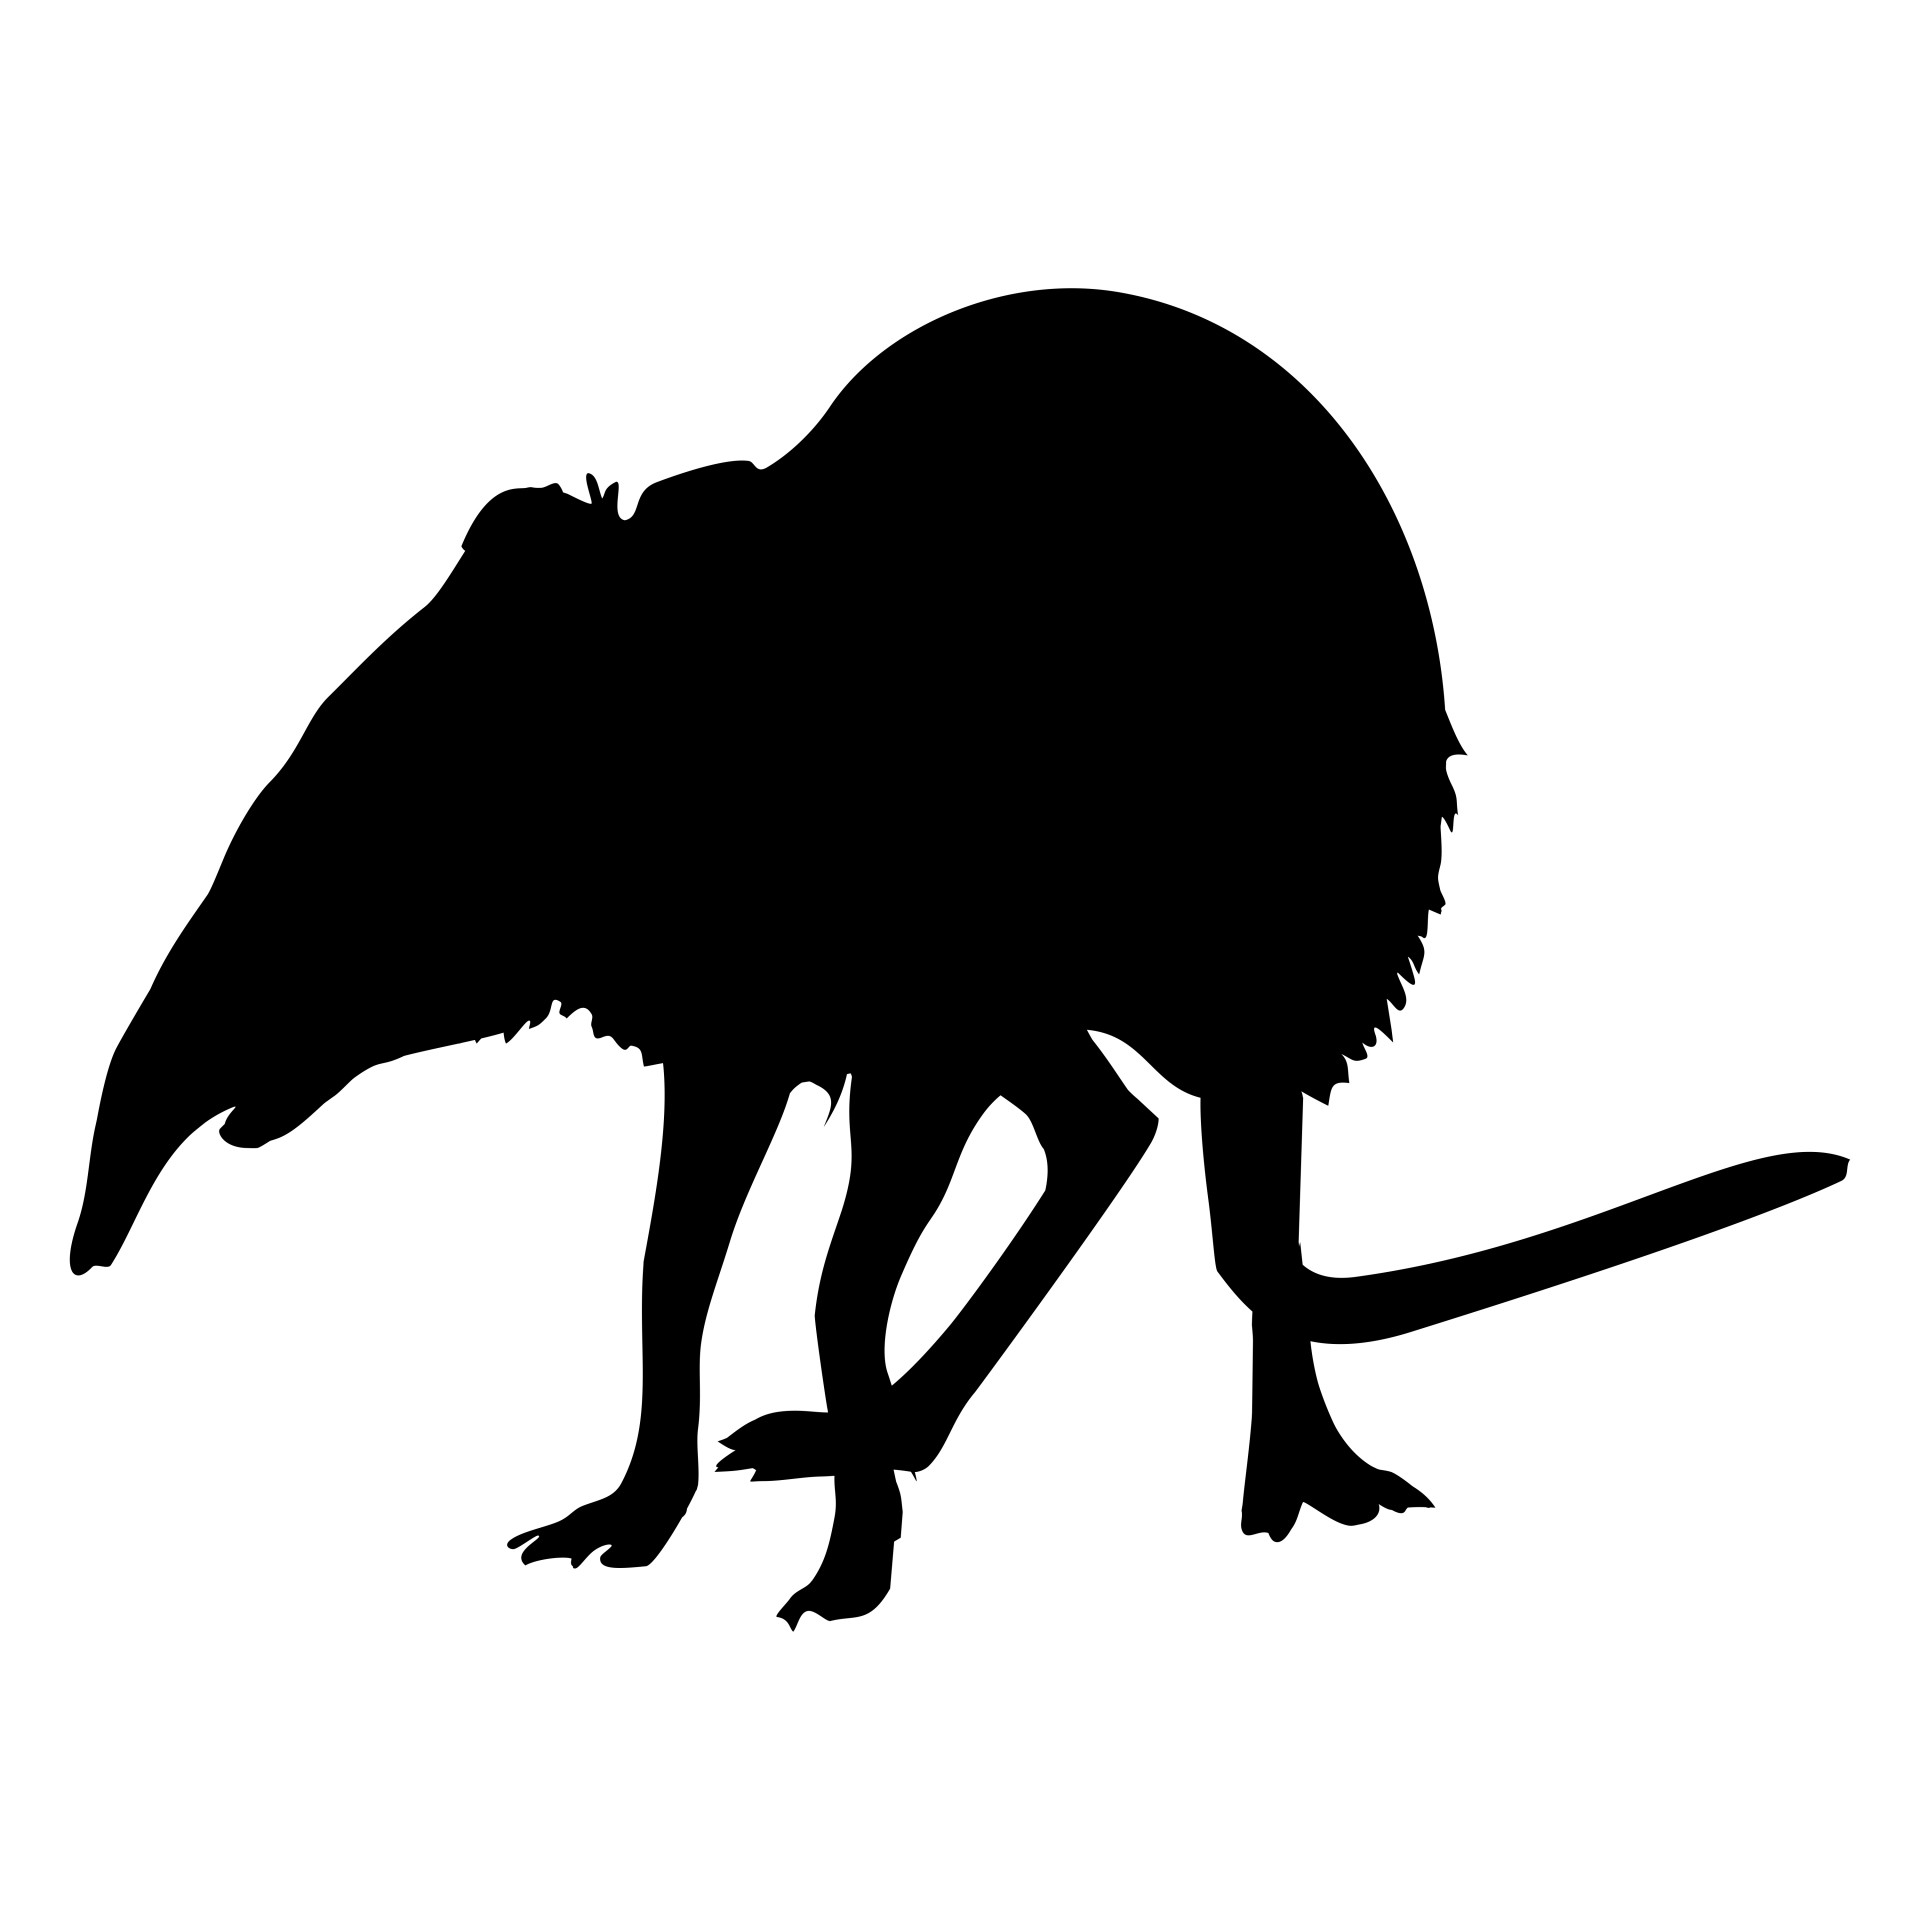 1920x1920 Shrew Silhouette Free Stock Photo